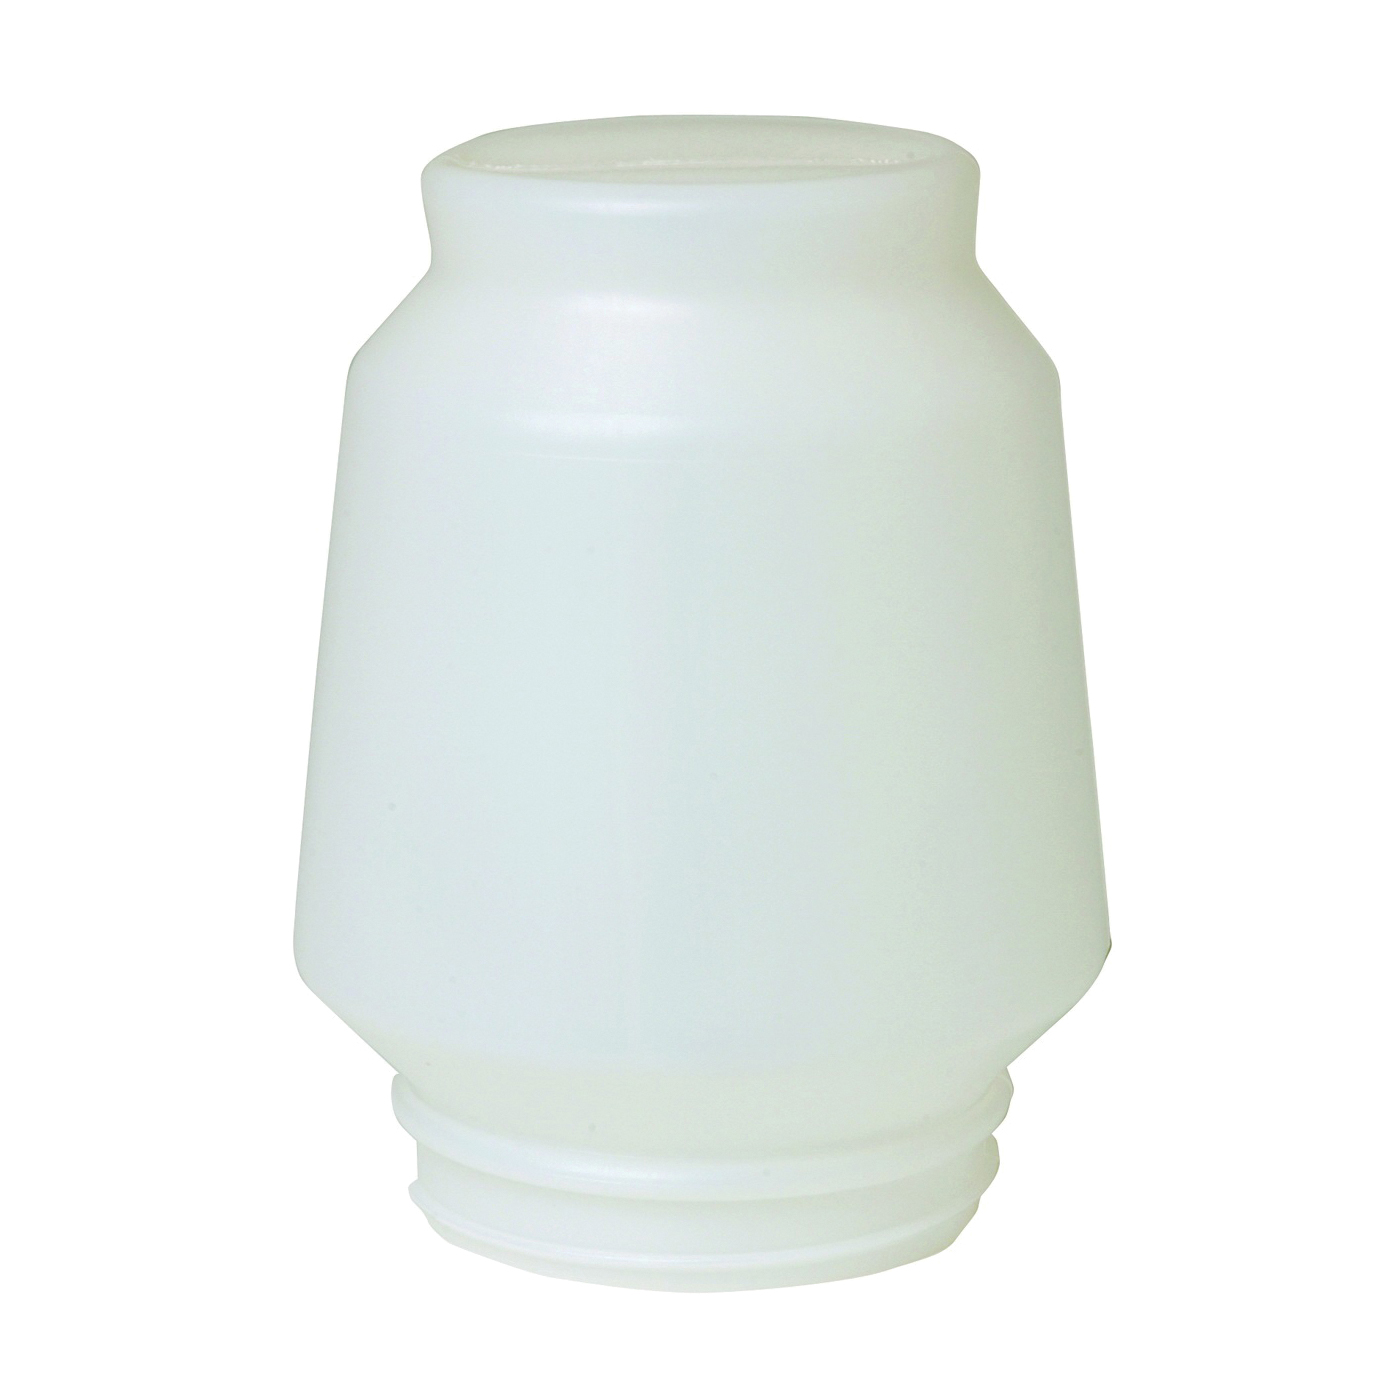 Picture of Little Giant 666 Poultry Waterer Jar, 1 gal Capacity, Plastic